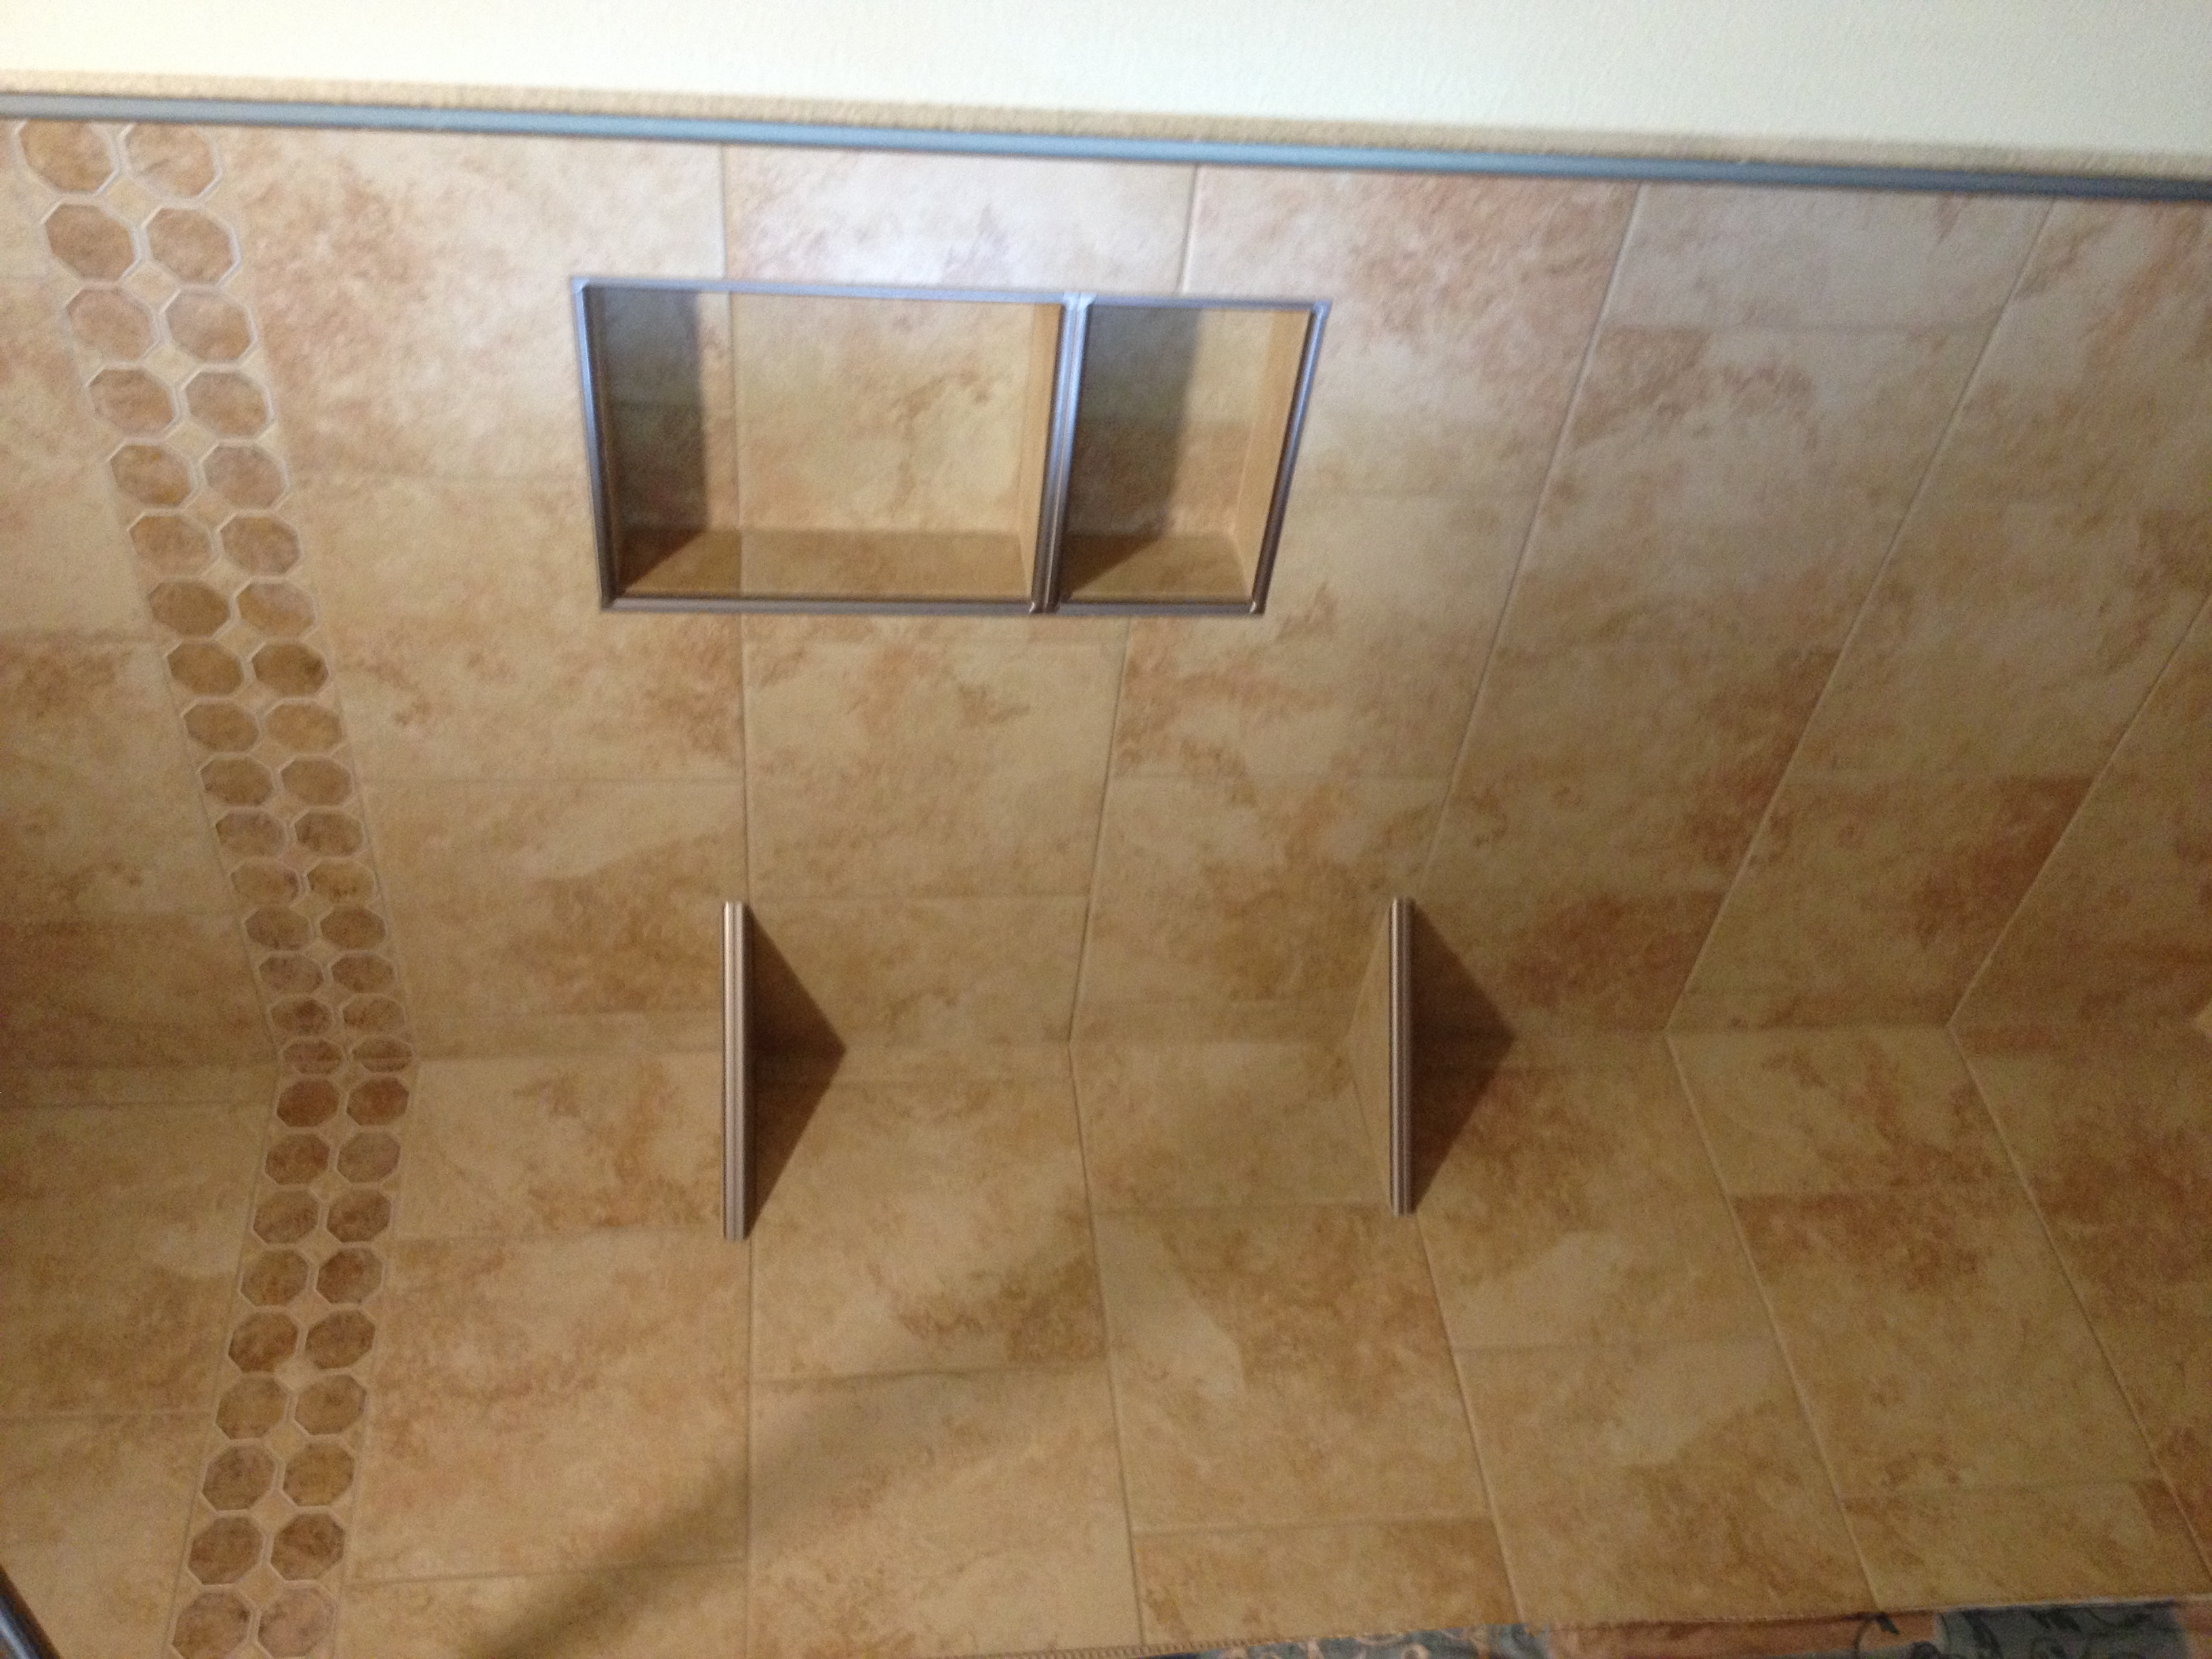 Tile Shower with Shelving